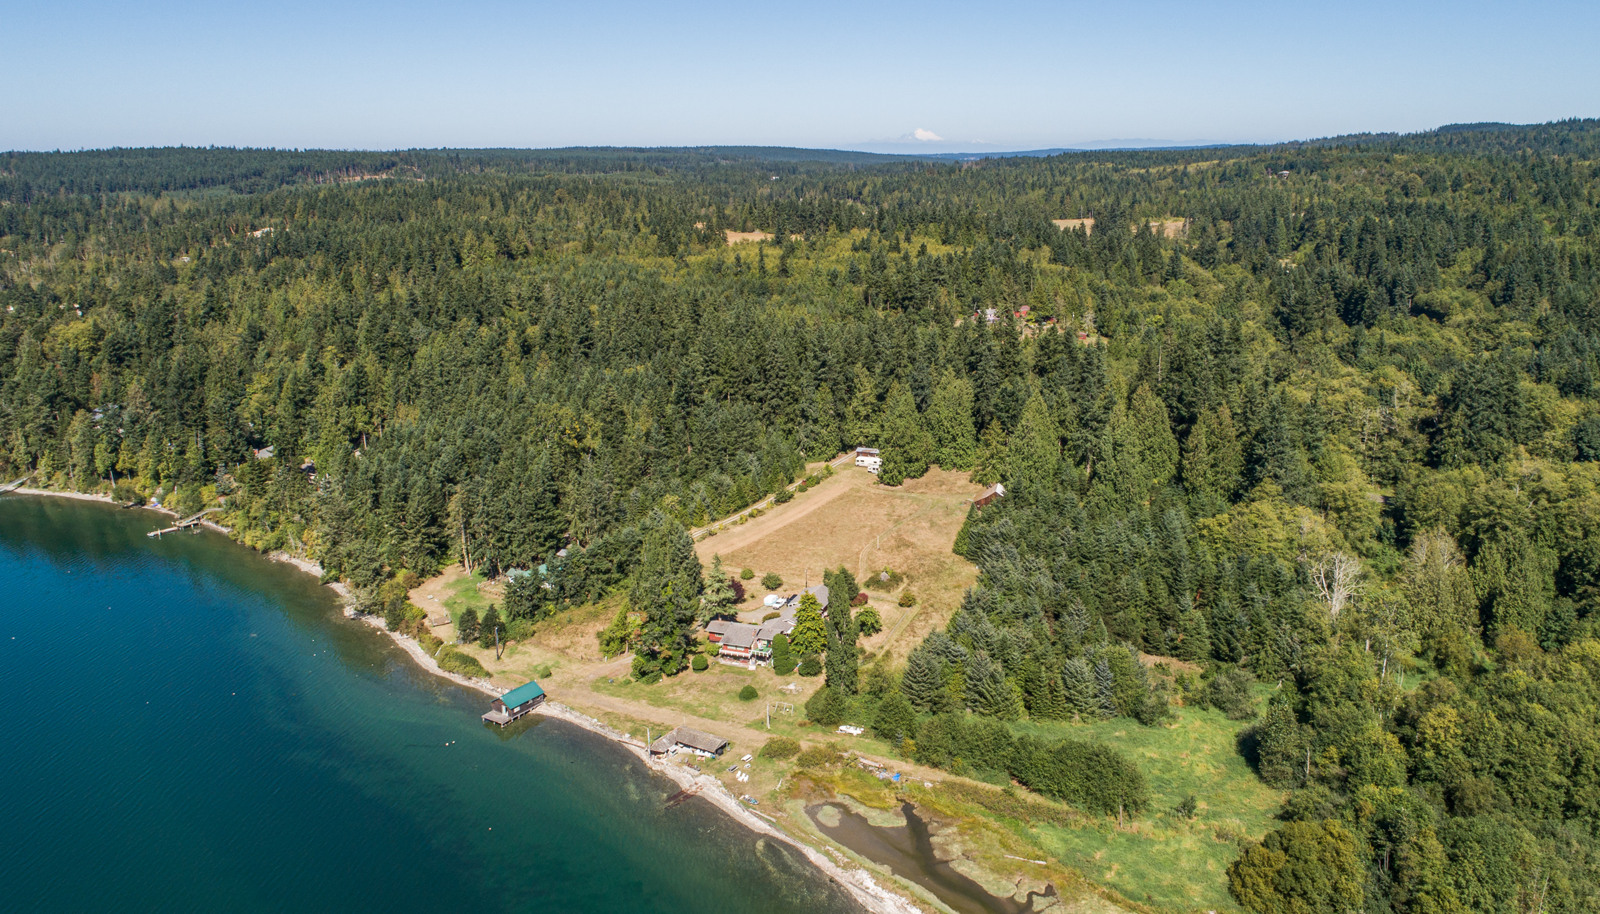 Over 20 Acres and Includes Tidelands!